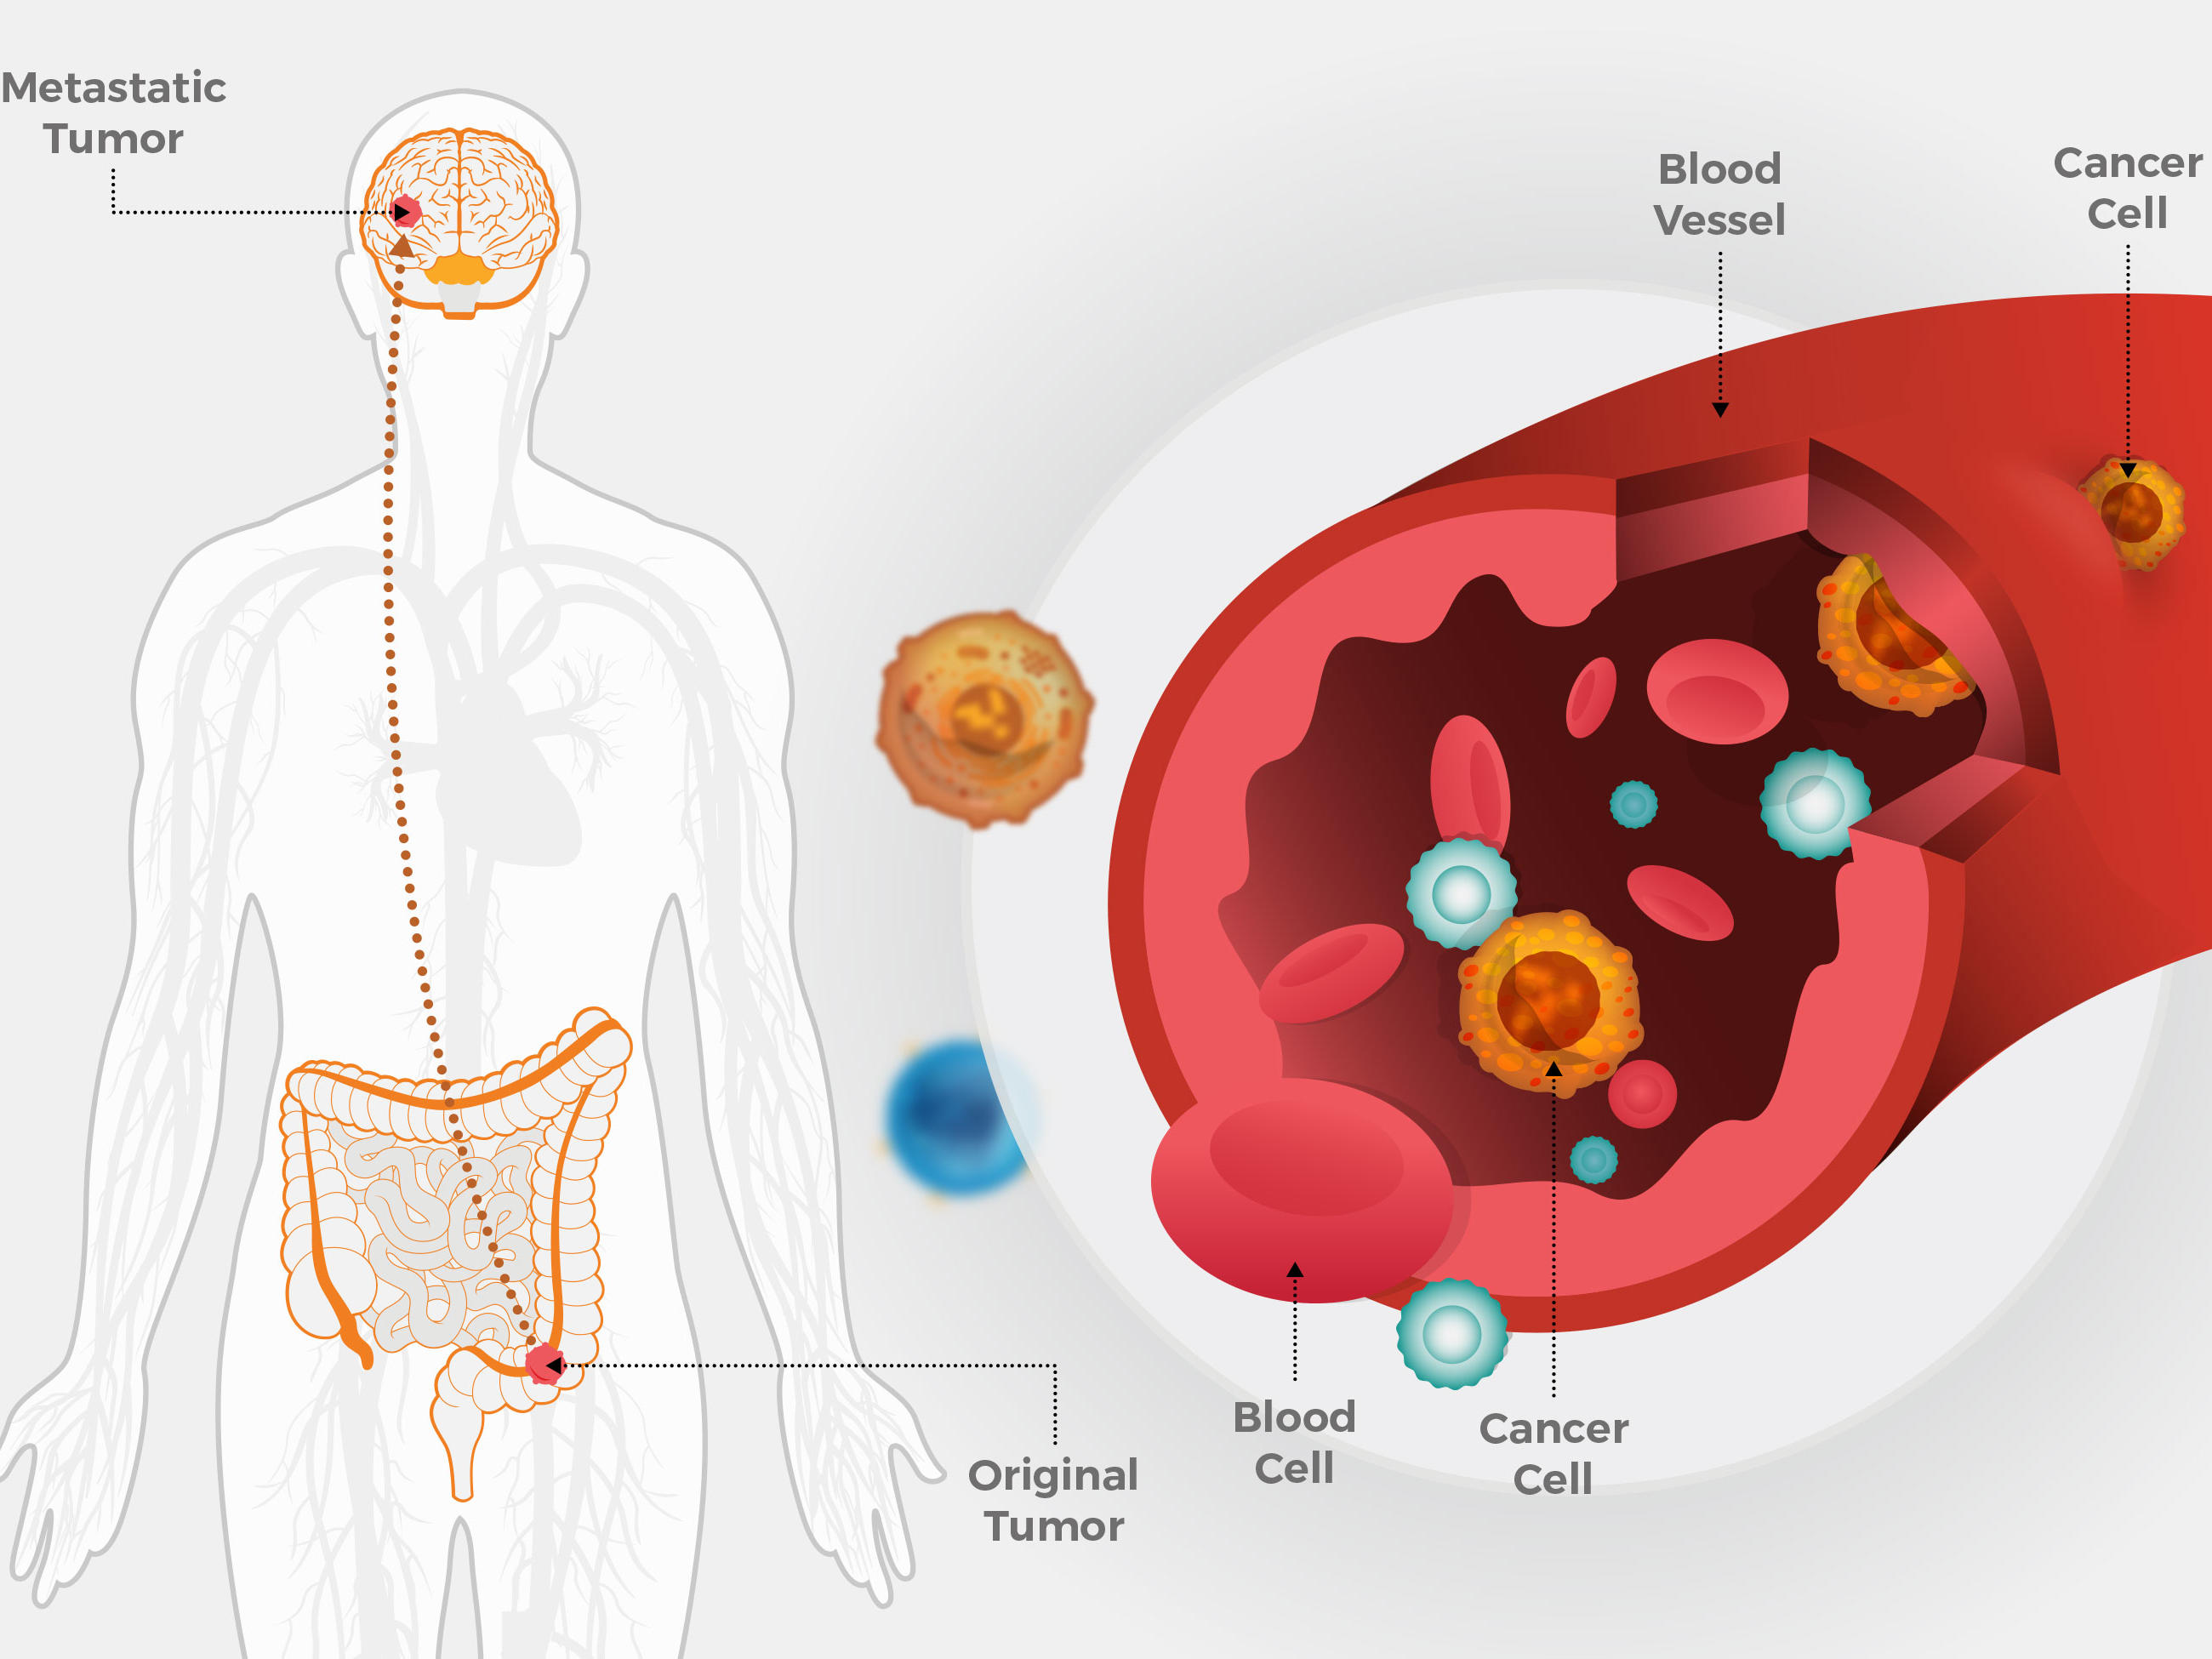 Metastatic Cancer Cells Uterine Cancer Test